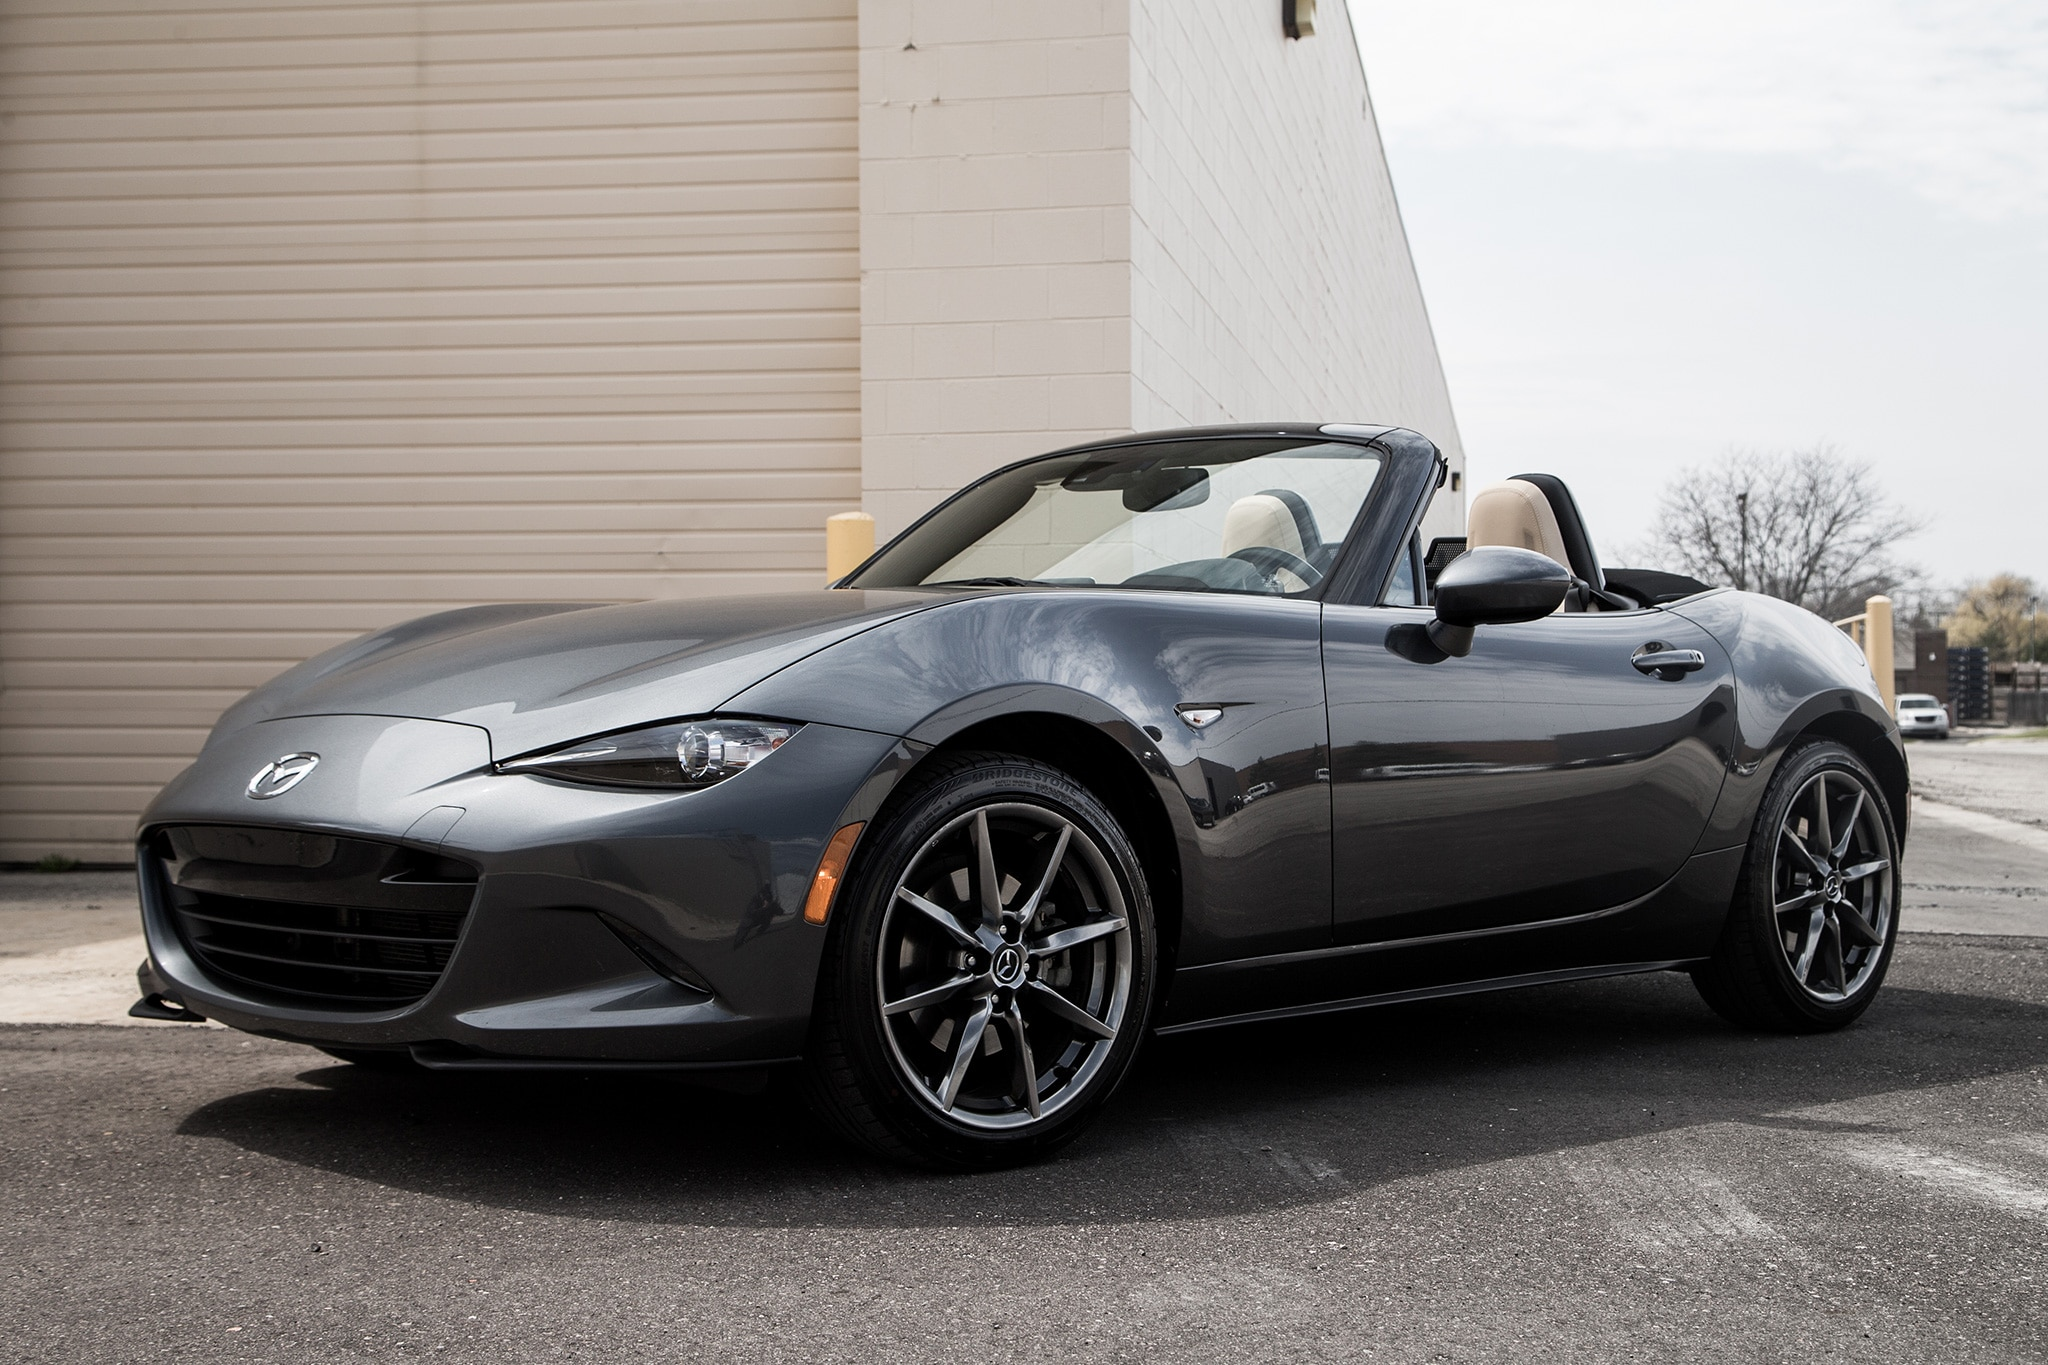 2016 Mazda MX-5 Miata Automatic One Week Review